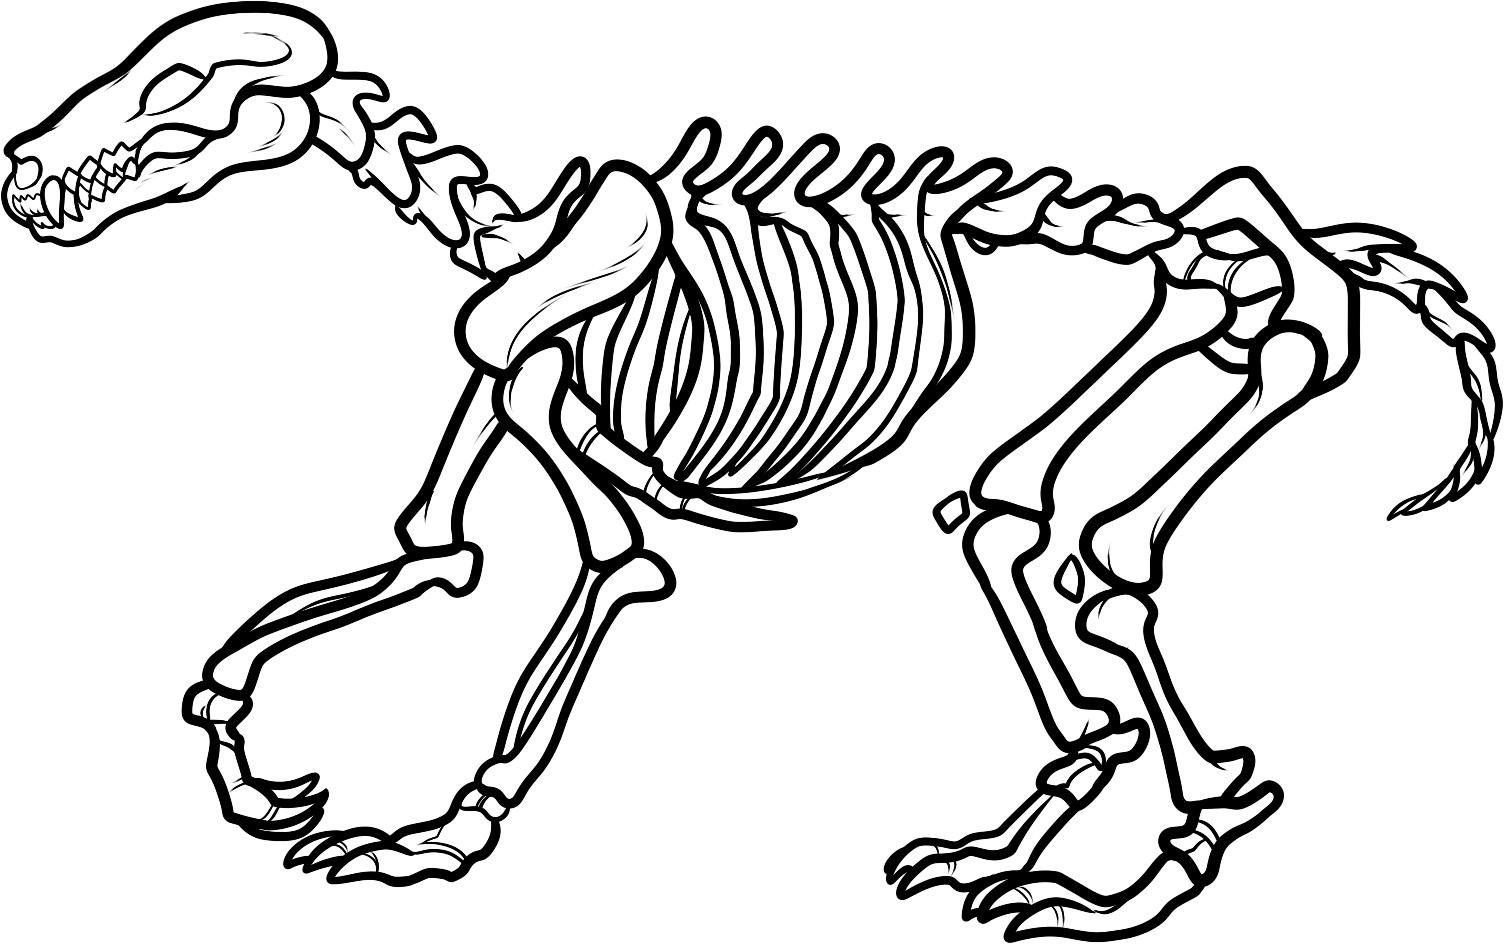 1504x944 Liberal Scary Dinosaur Coloring Pages Kids Drawing At Getdrawings